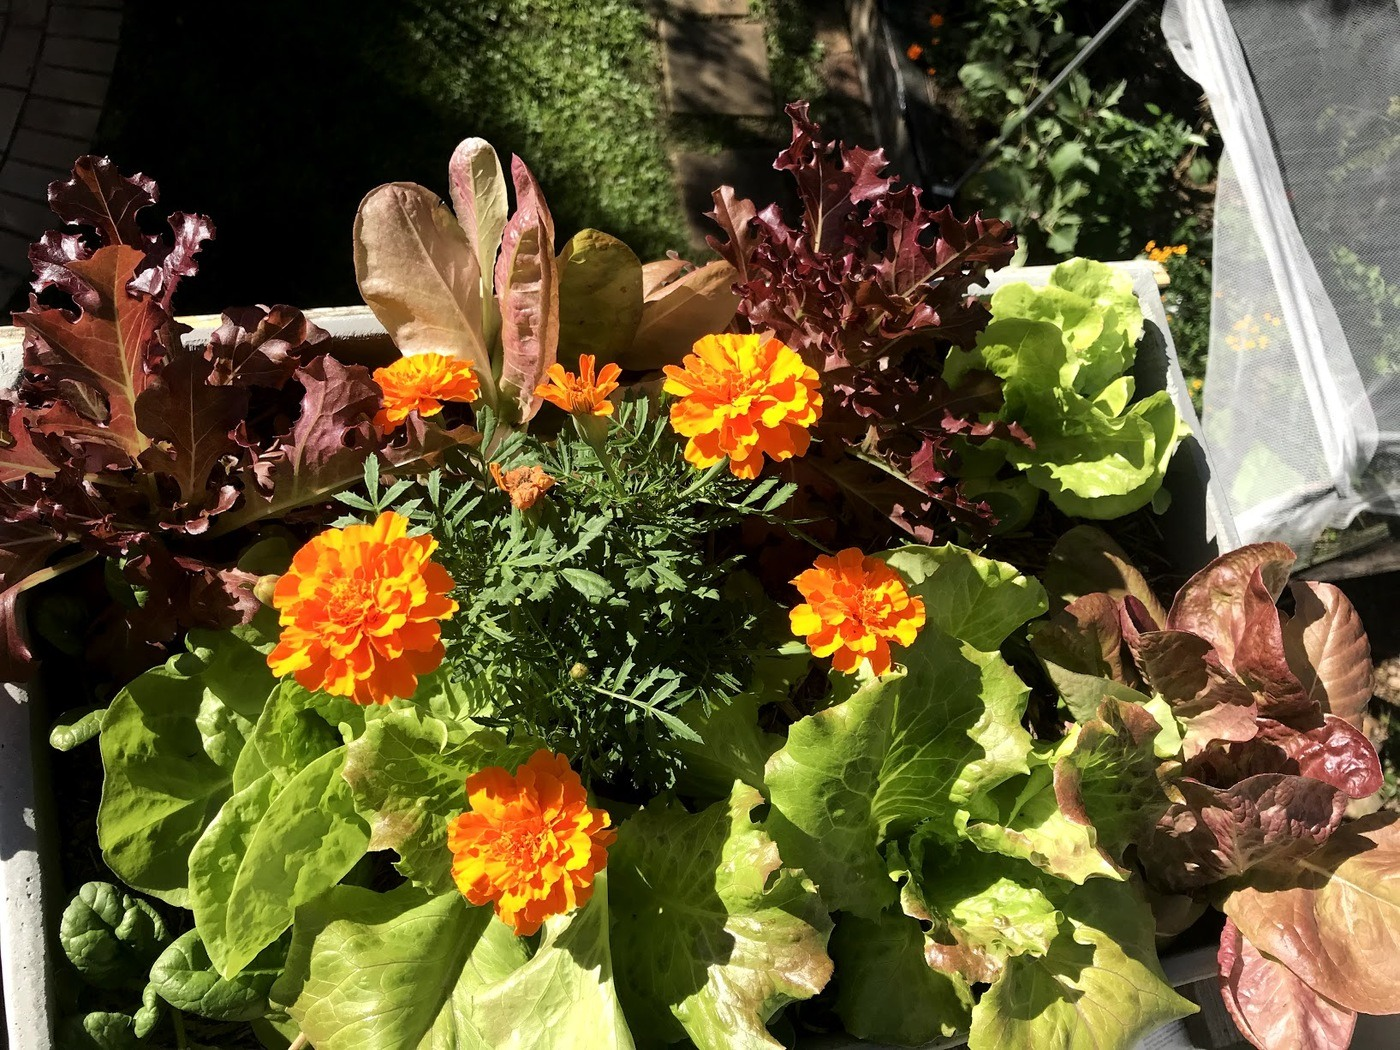 Marigolds in Lettuce